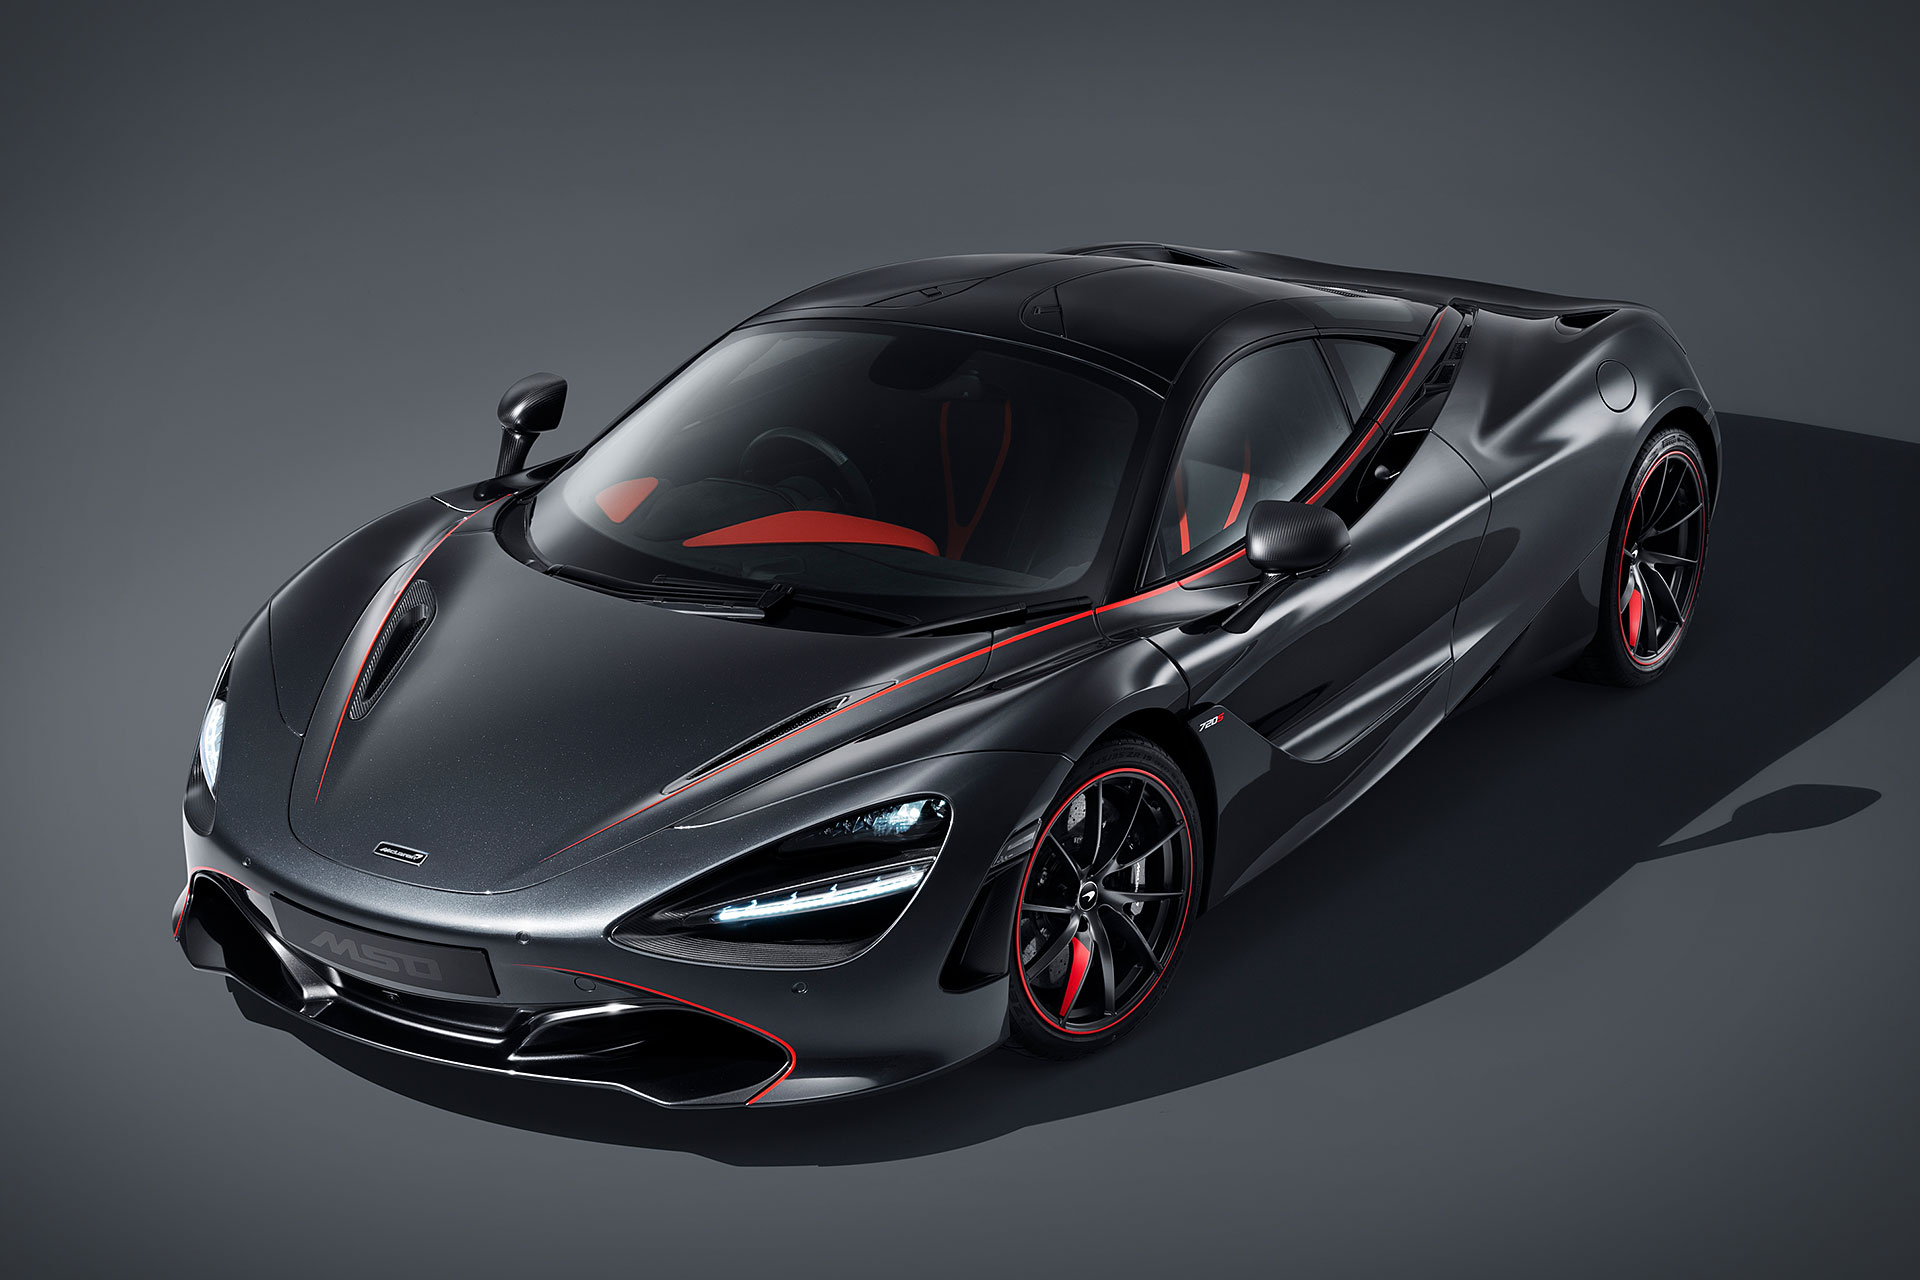 McLaren MSO 720s Stealth Coupe